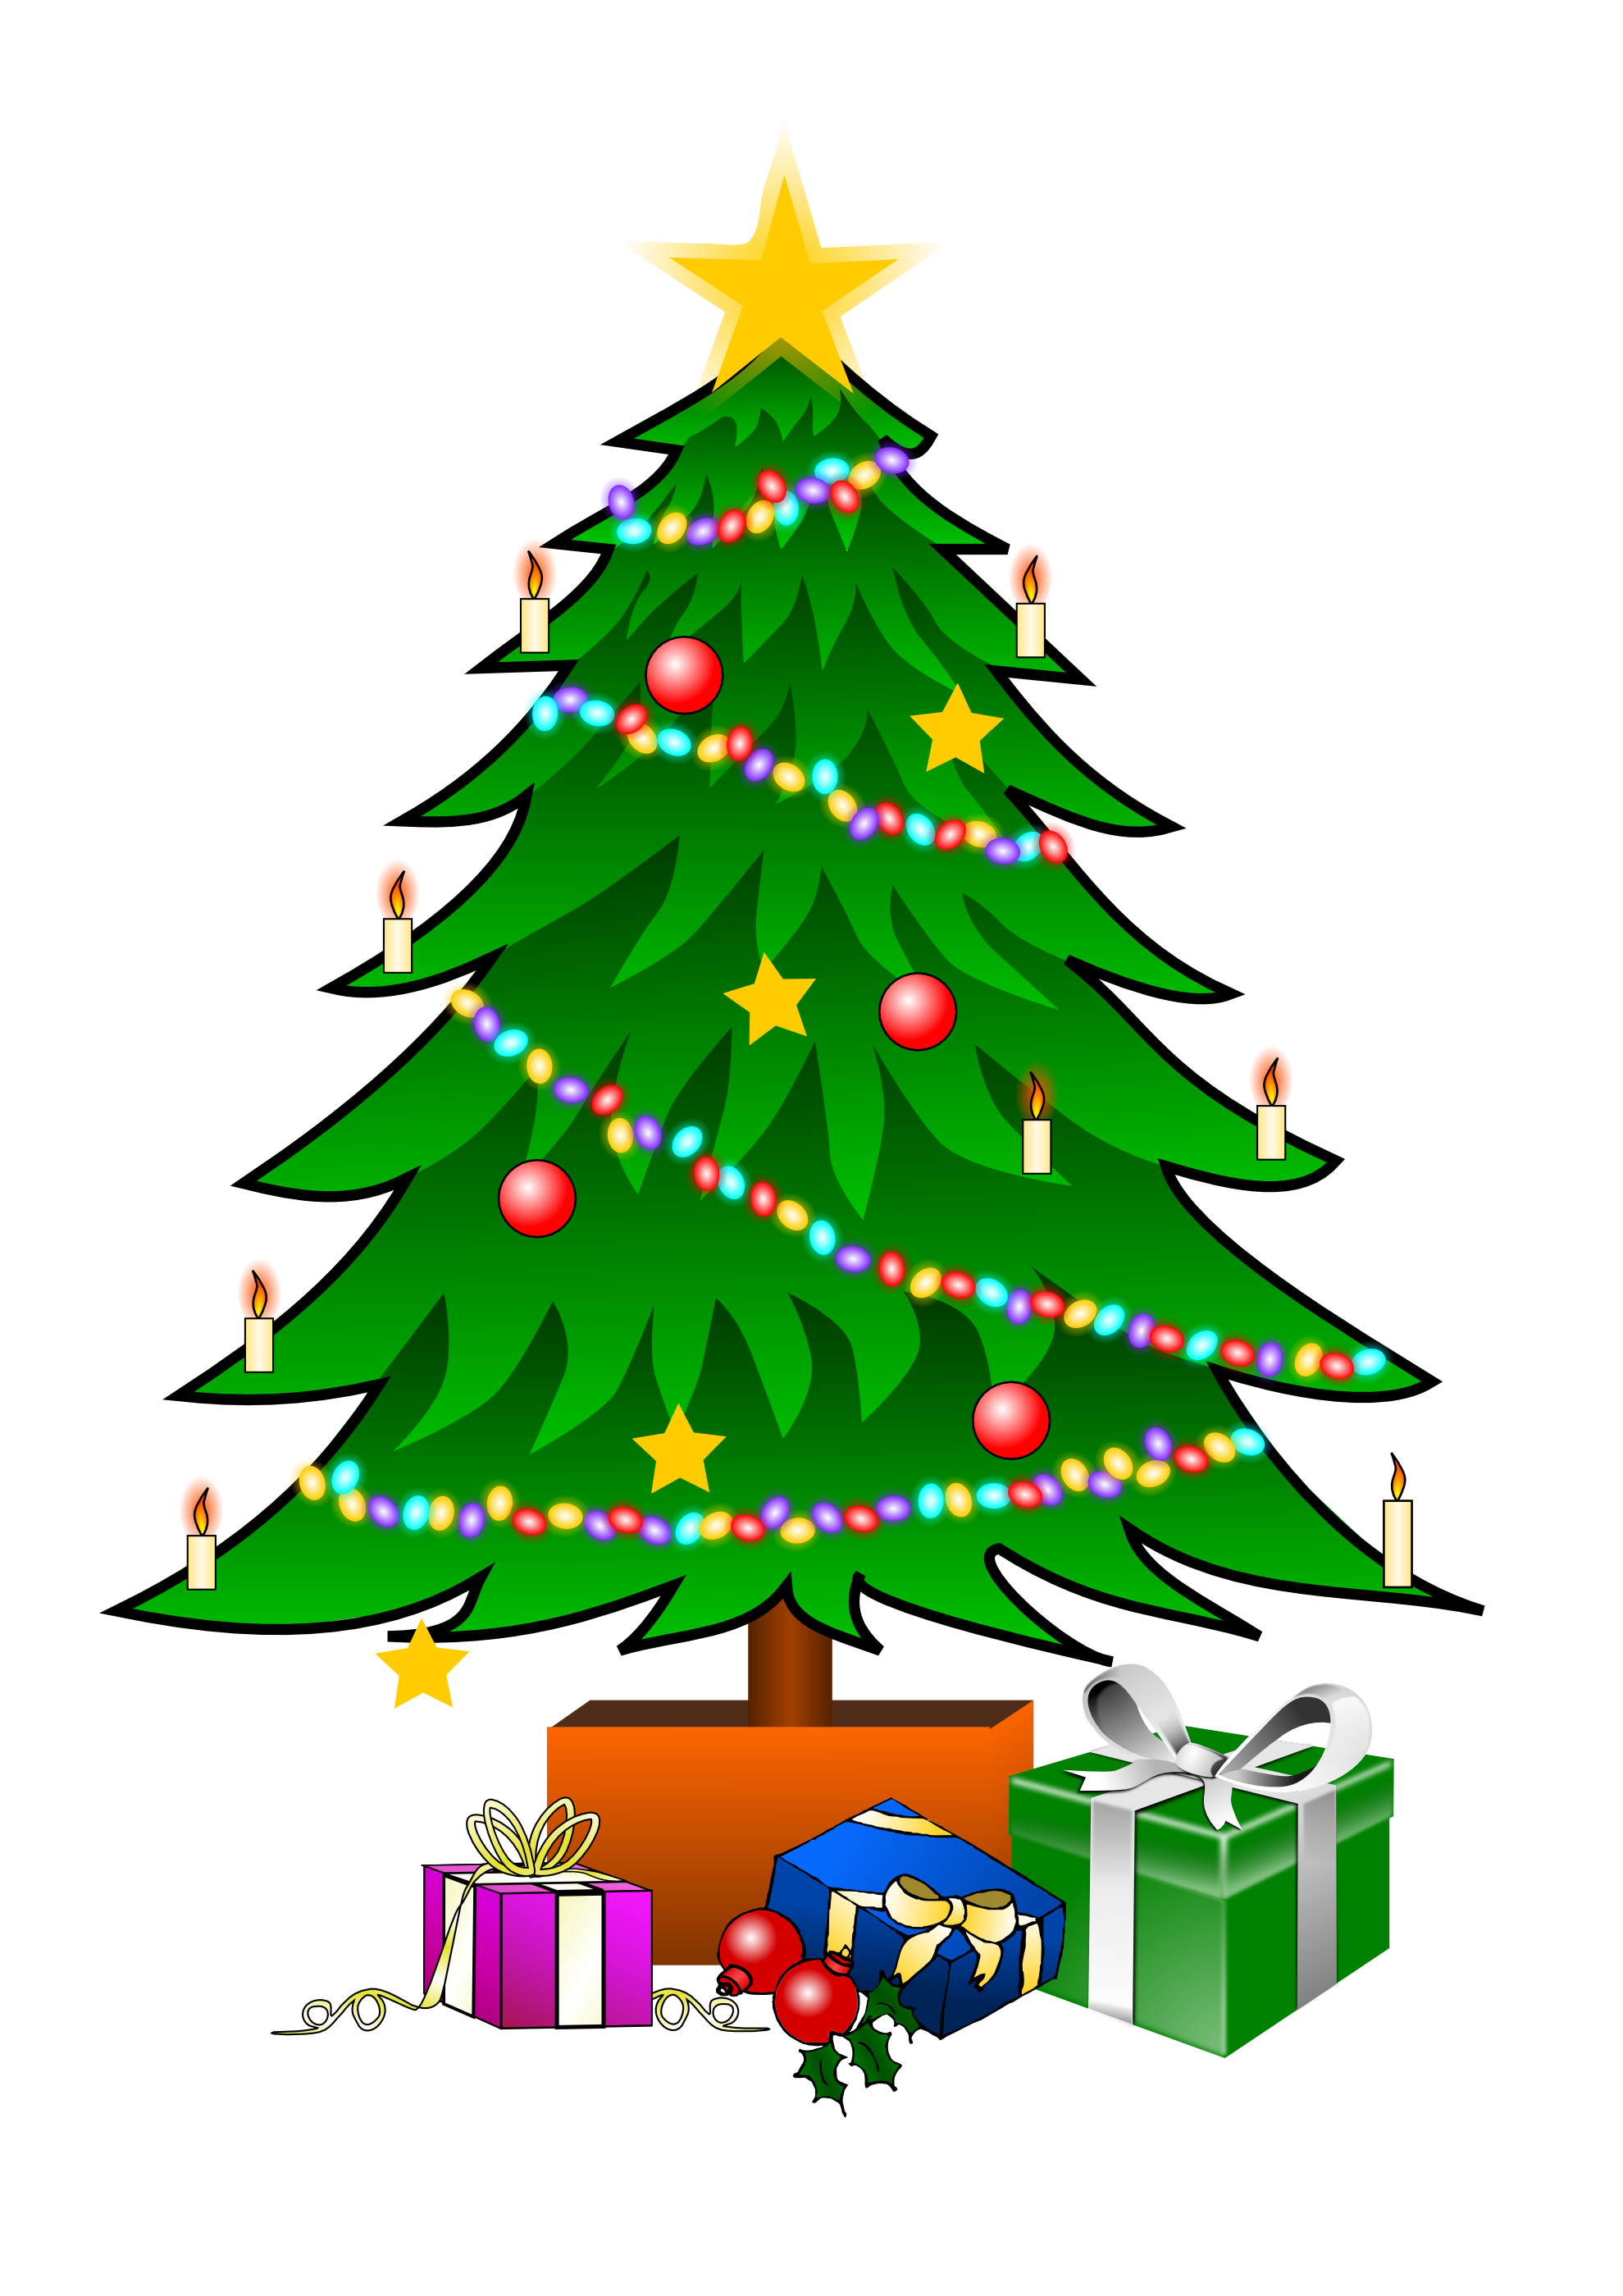 Christmas Tree Clip Art_04